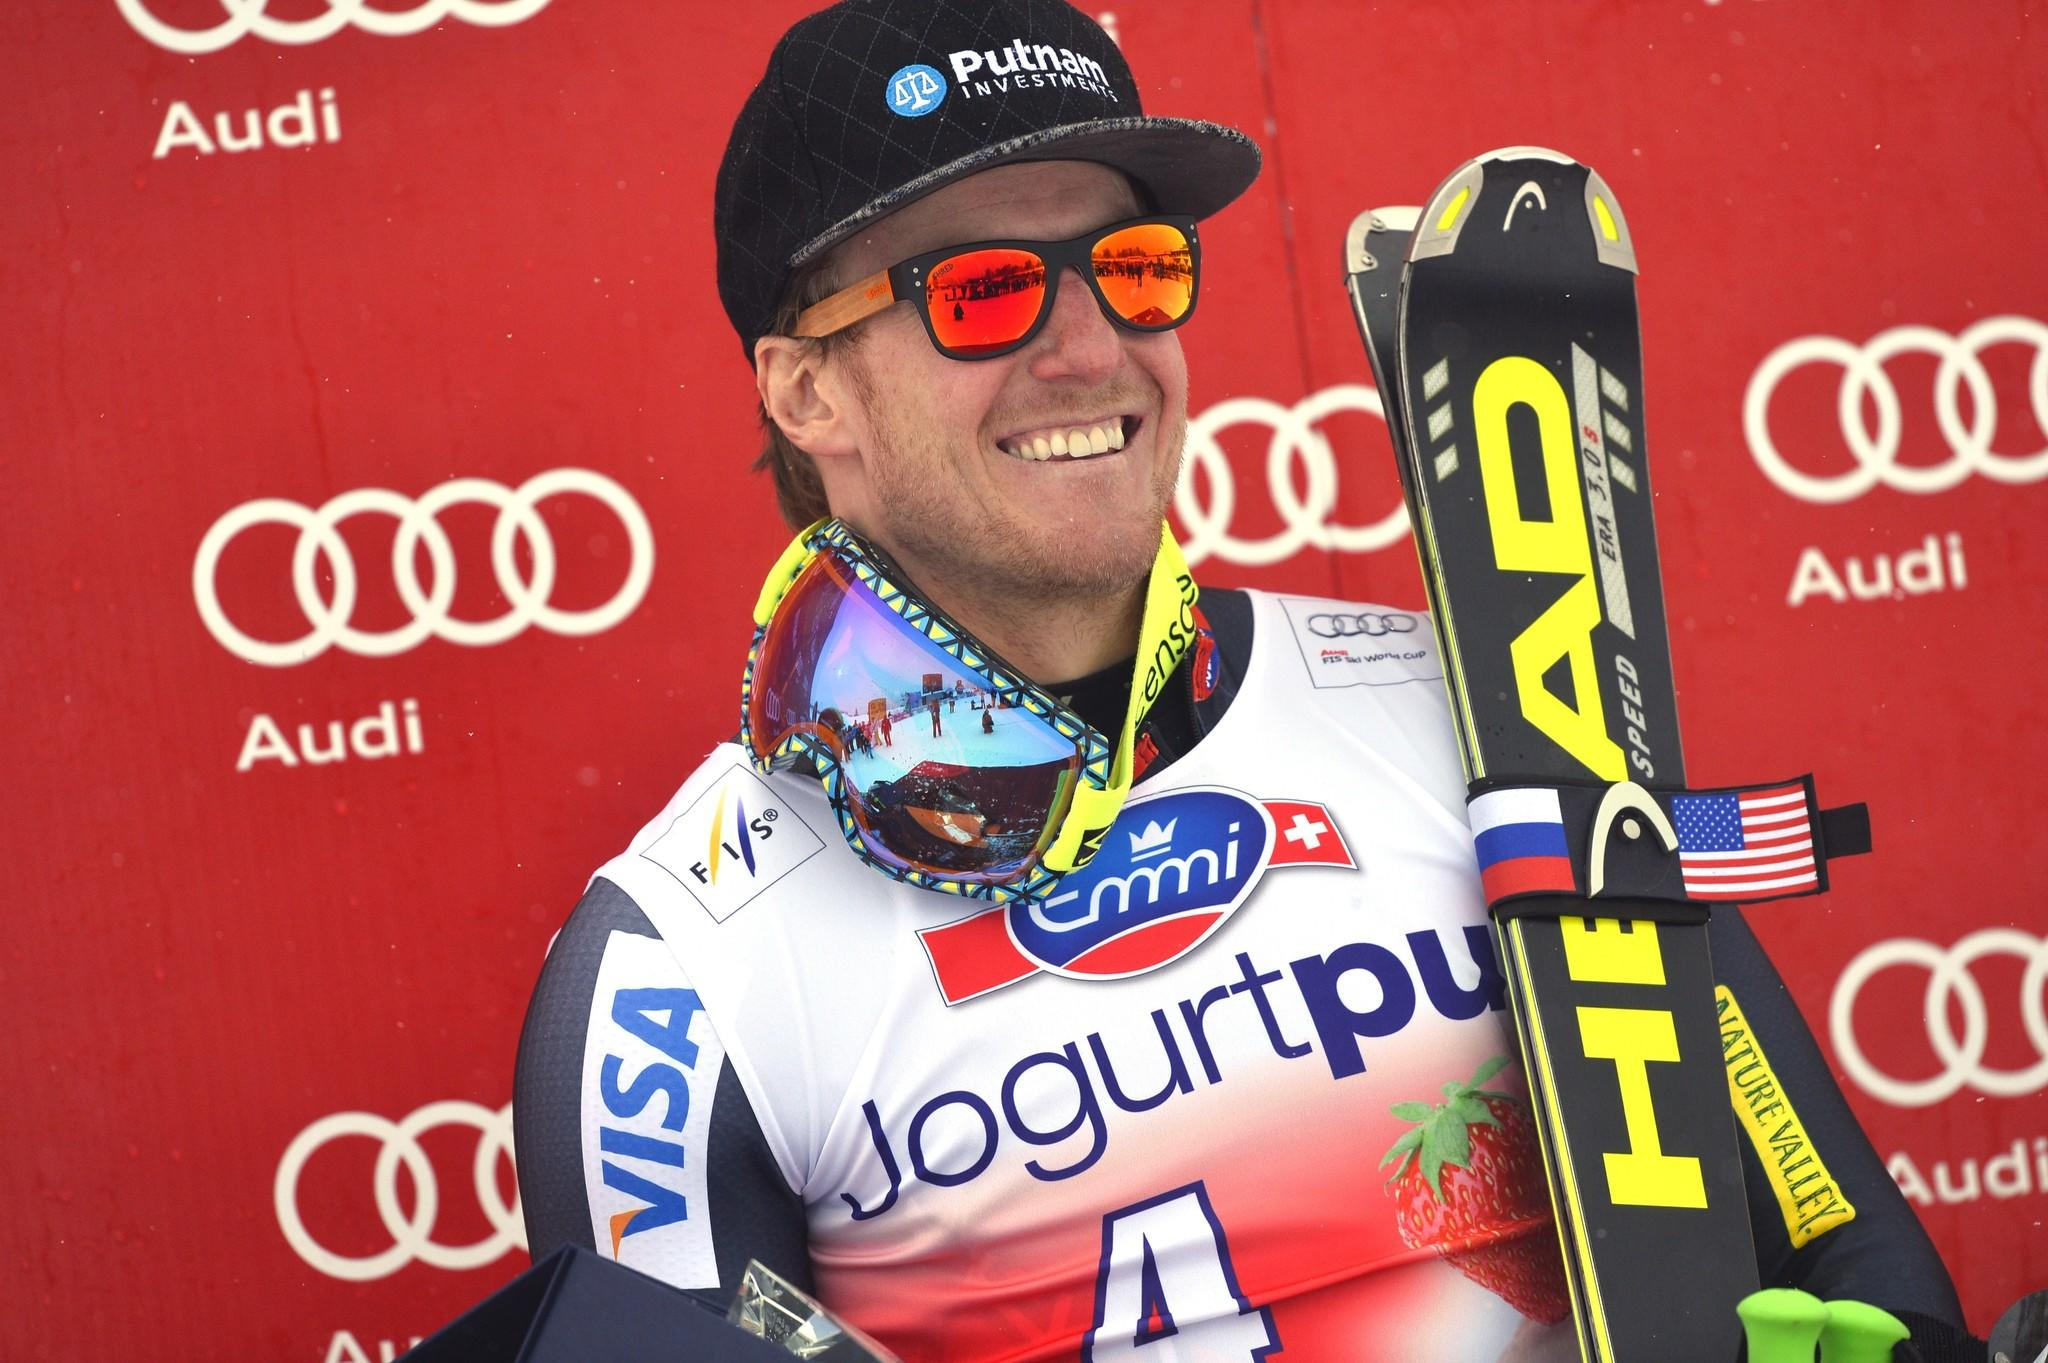 Ted Ligety takes 1st place during the Audi FIS Alpine Ski World Cup Men's Giant Slalom in St. Moritz, Switzerland. (Sindy Thomas/Getty Photo)